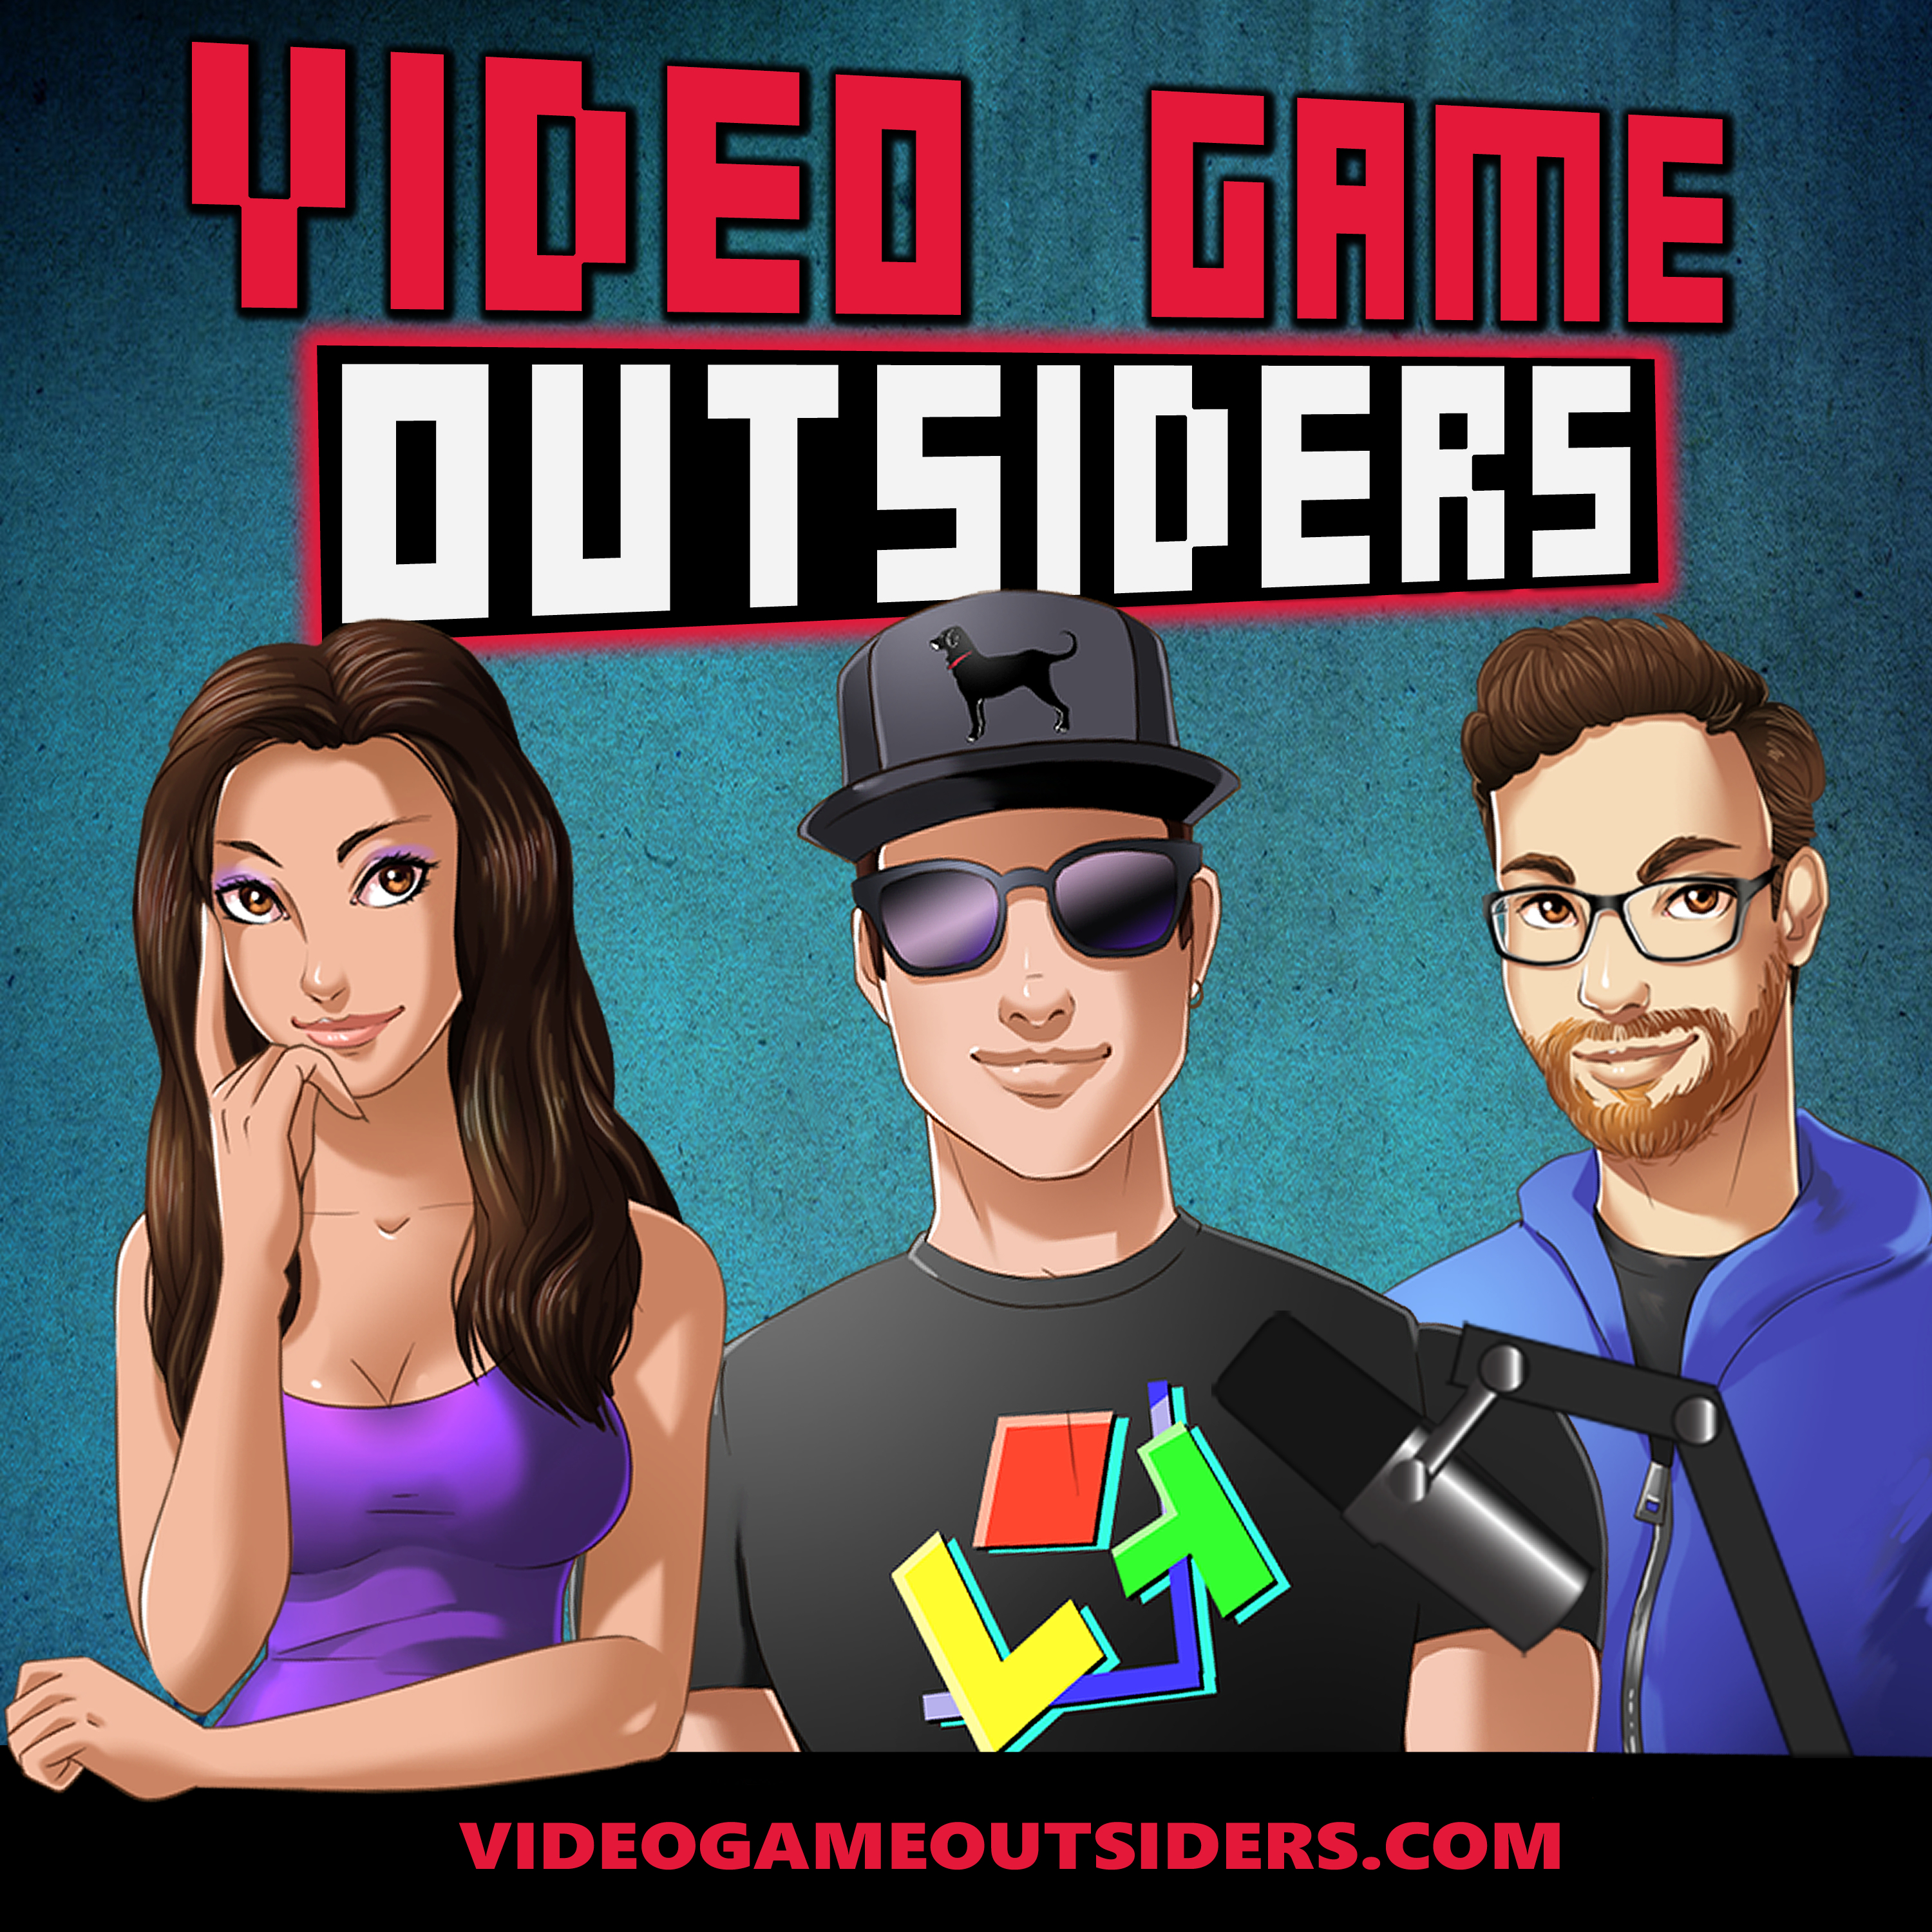 Video Game Outsiders